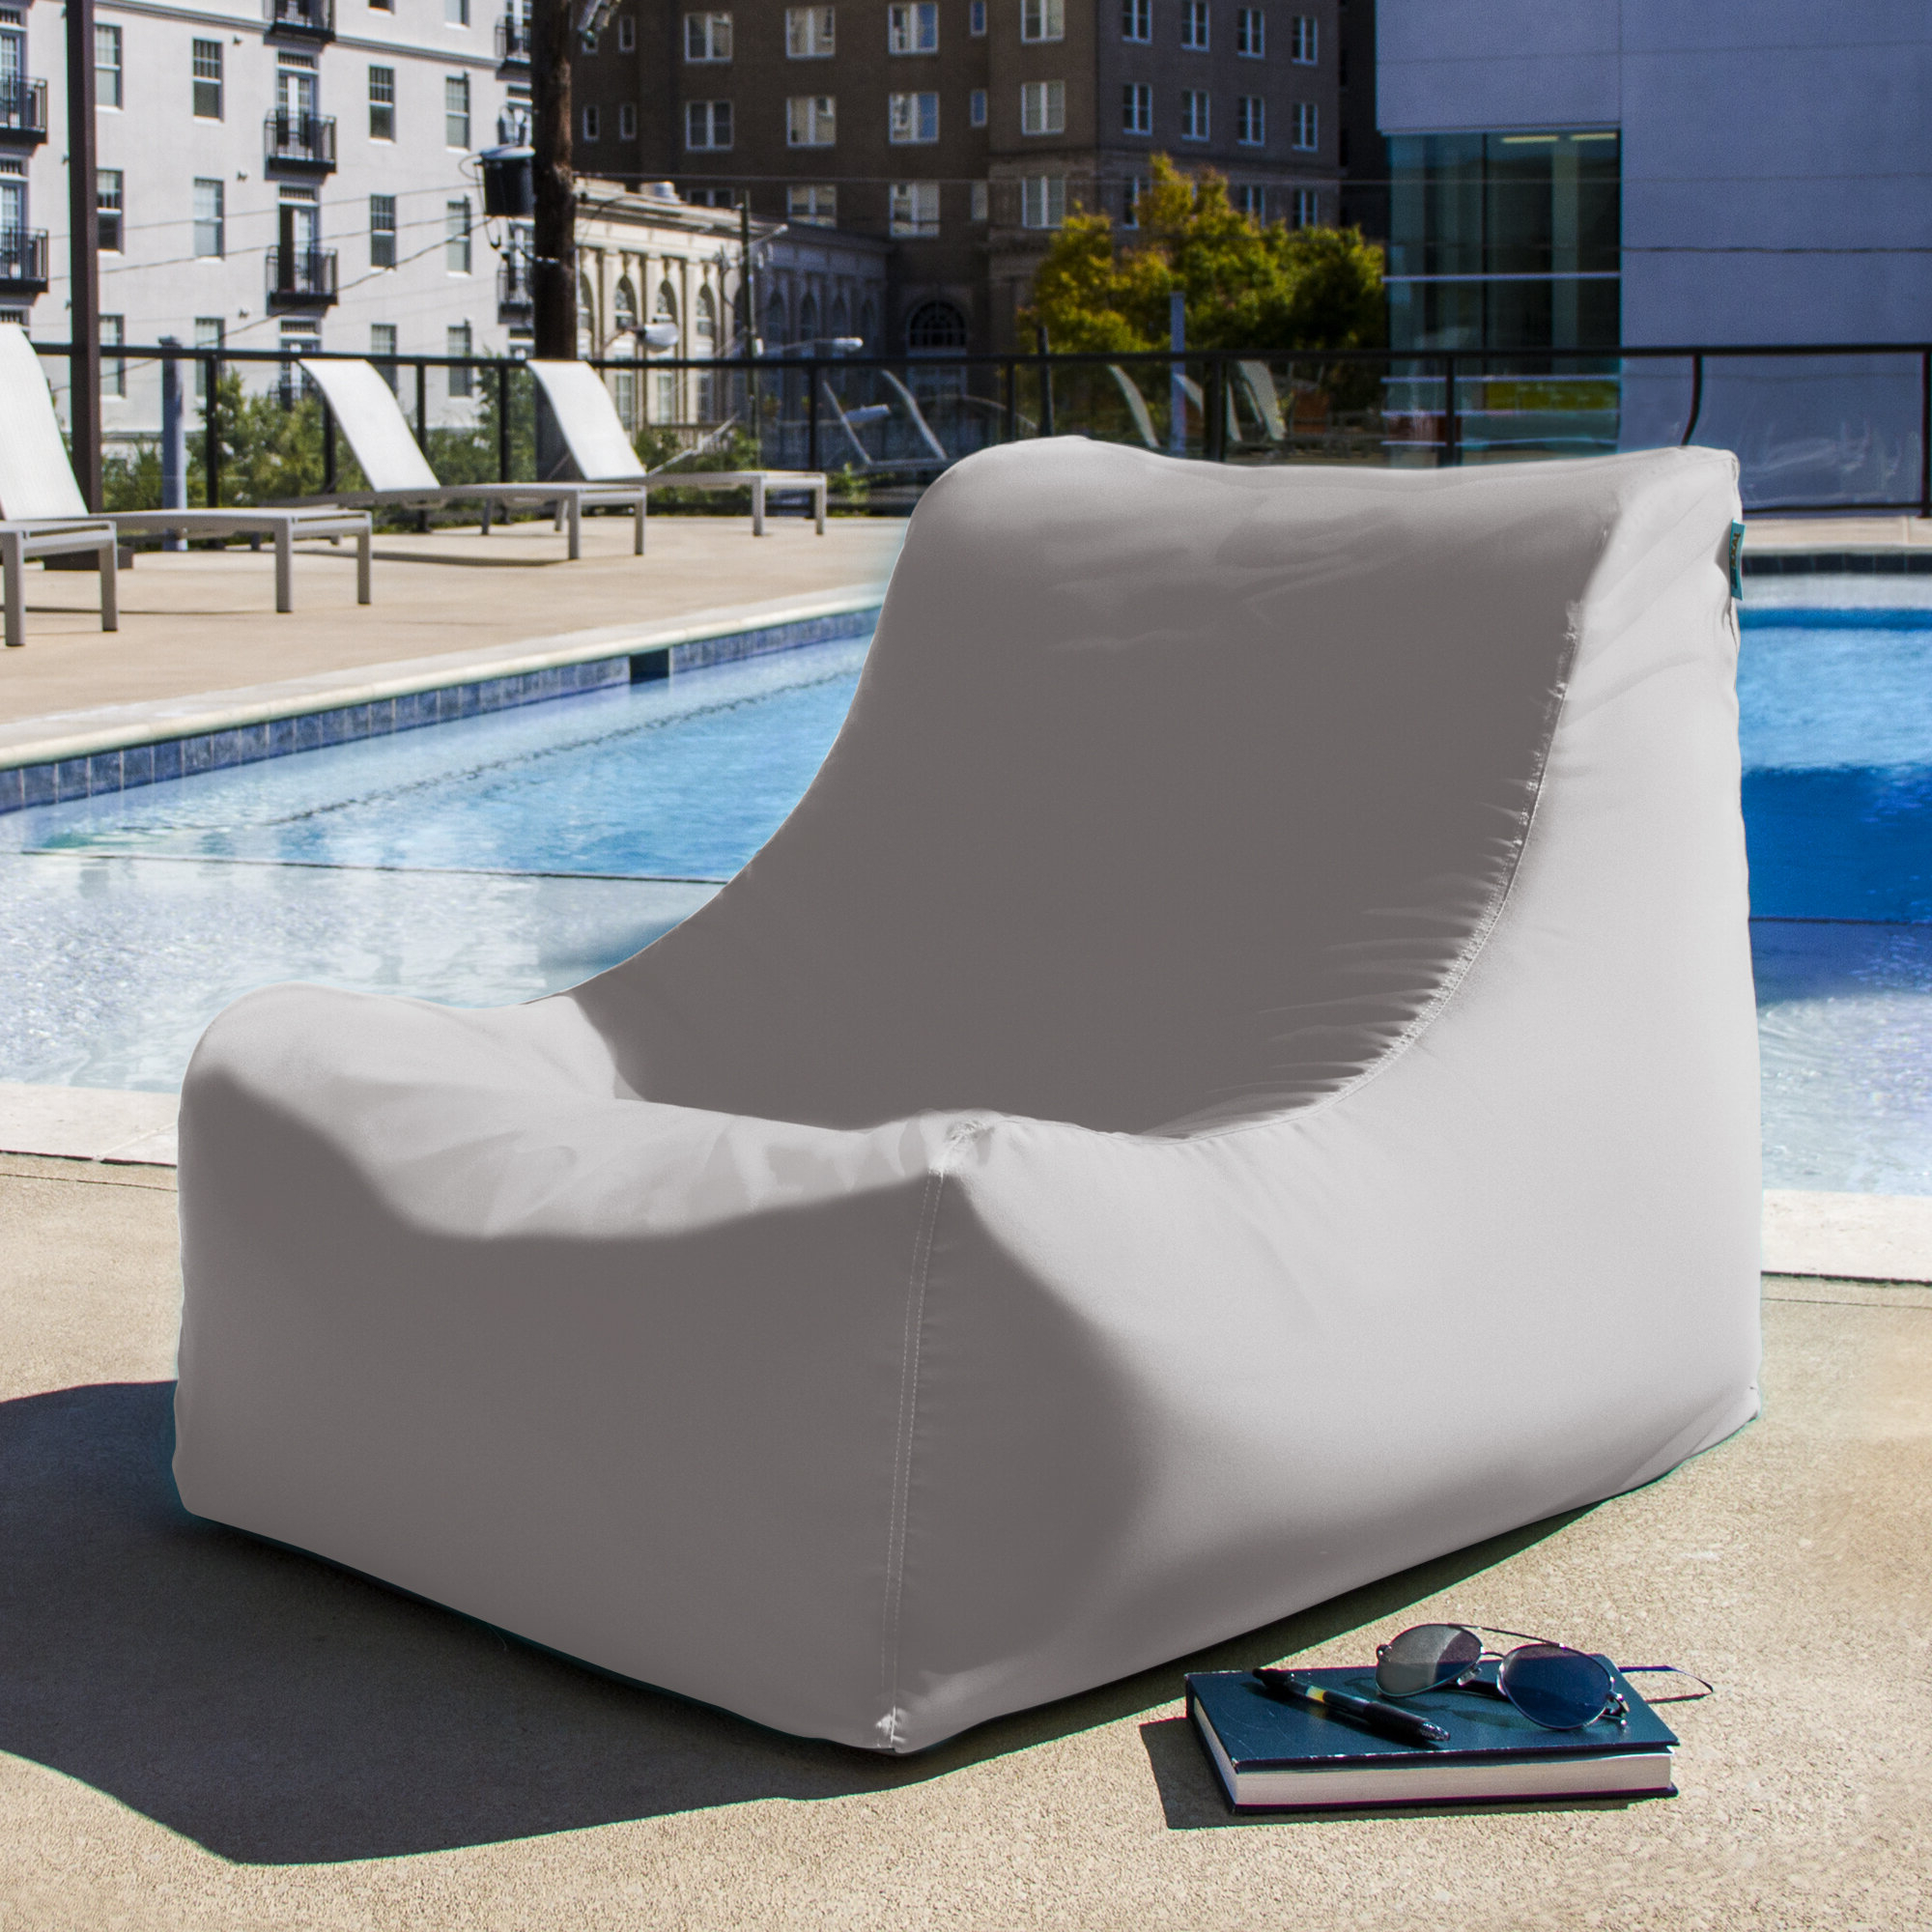 Jaxx Ponce Outdoor Bean Bag Patio Chairs Throughout 2020 Ponce Outdoor Bean Bag Lounger (Gallery 10 of 25)